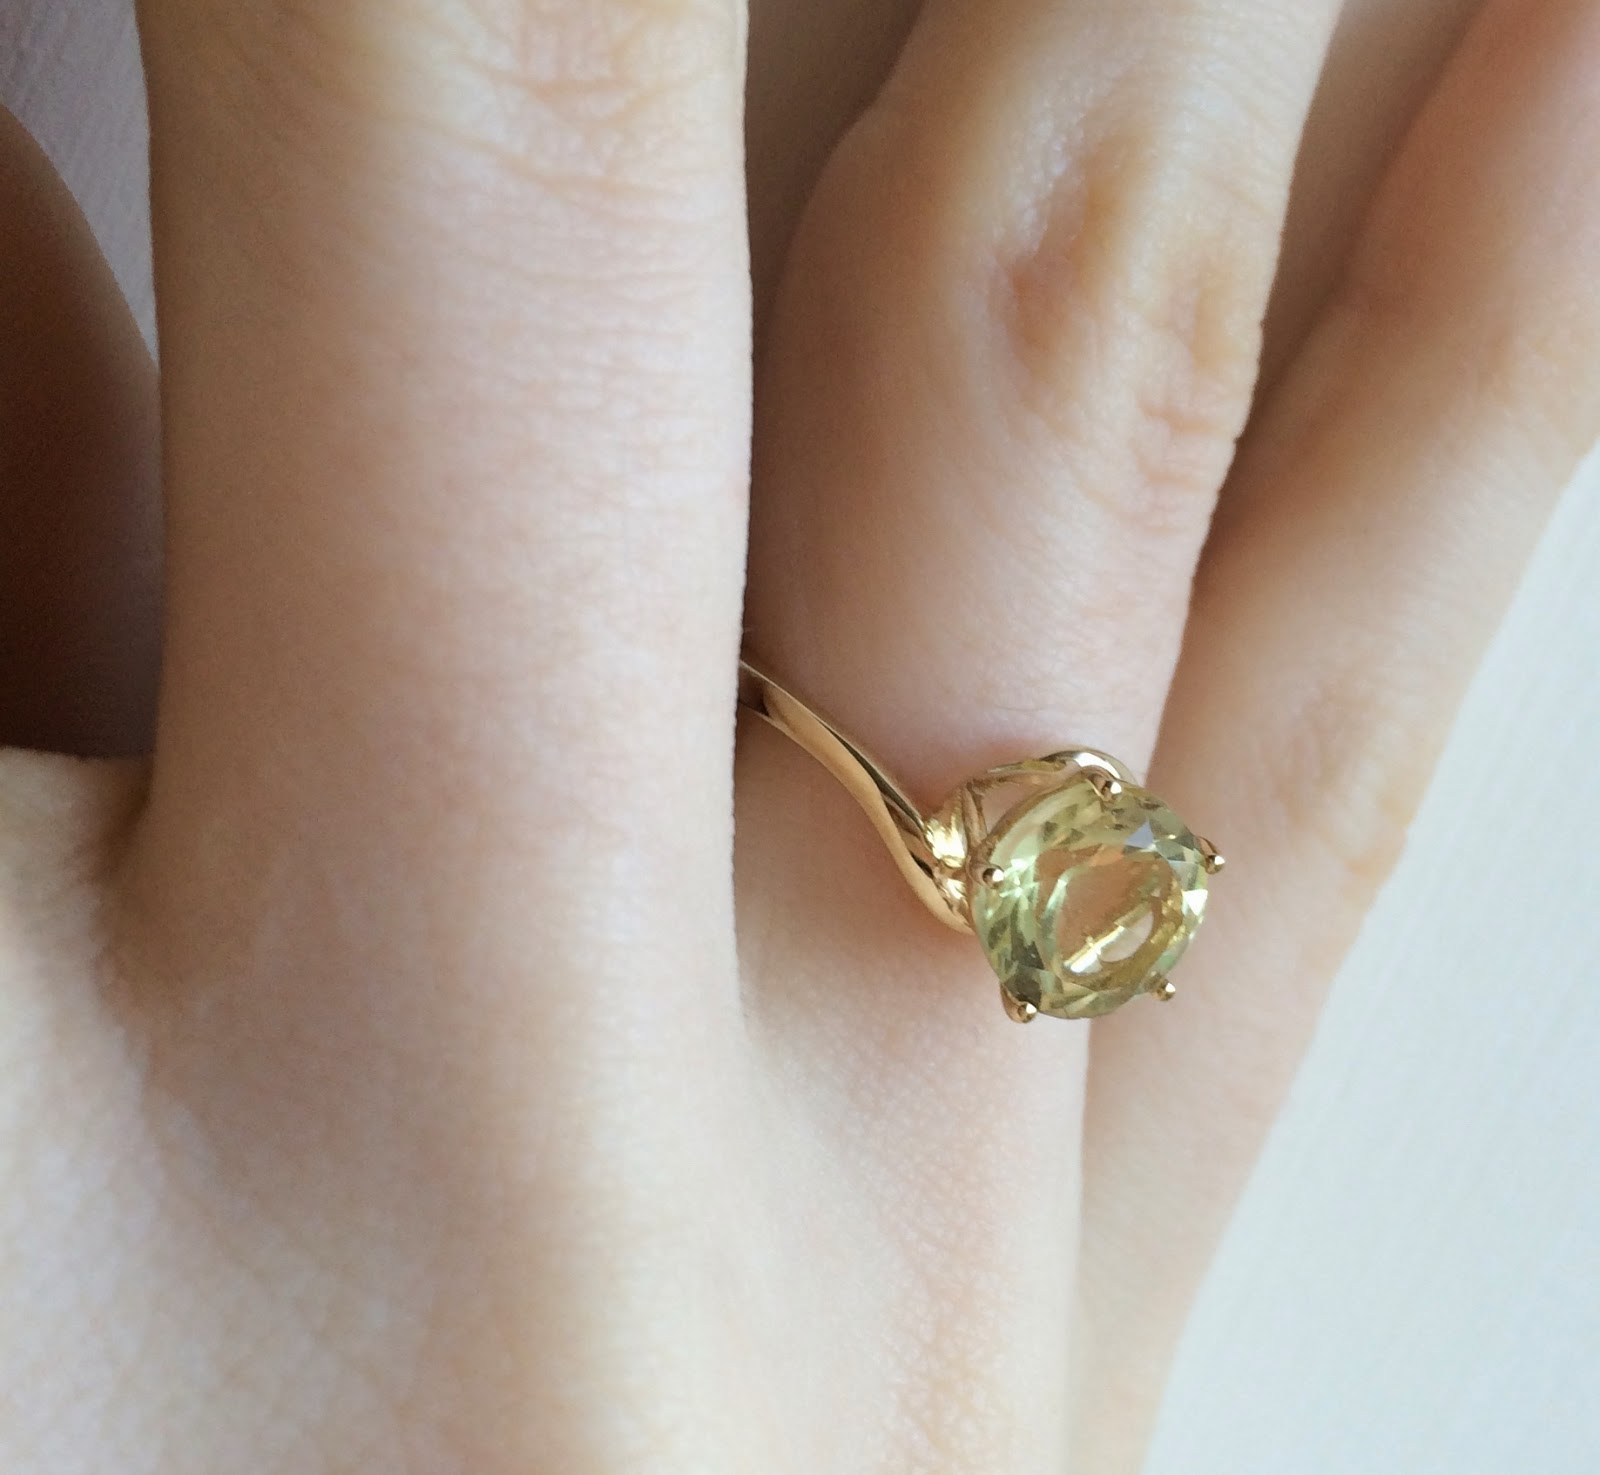 gemporia-yellow-citrine-ring-9k-gold